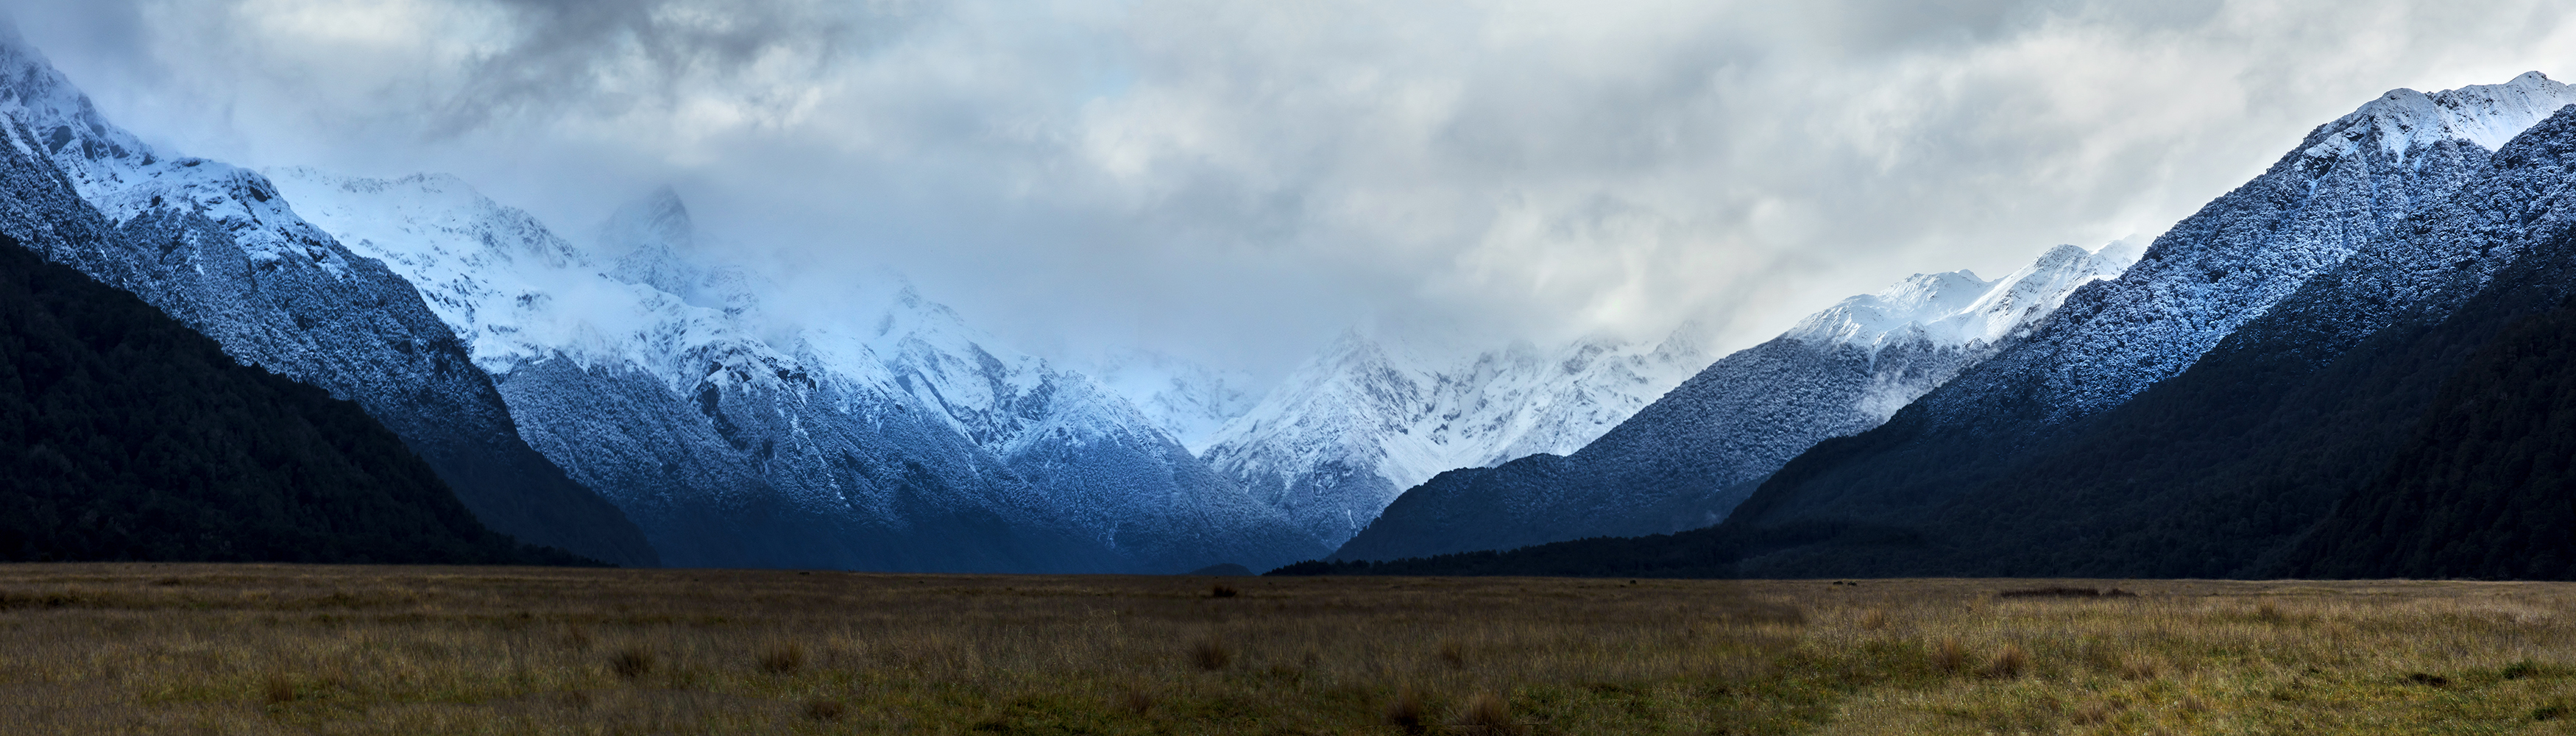 Frozen Earl and Livingston Mountains at Eglinton Valley